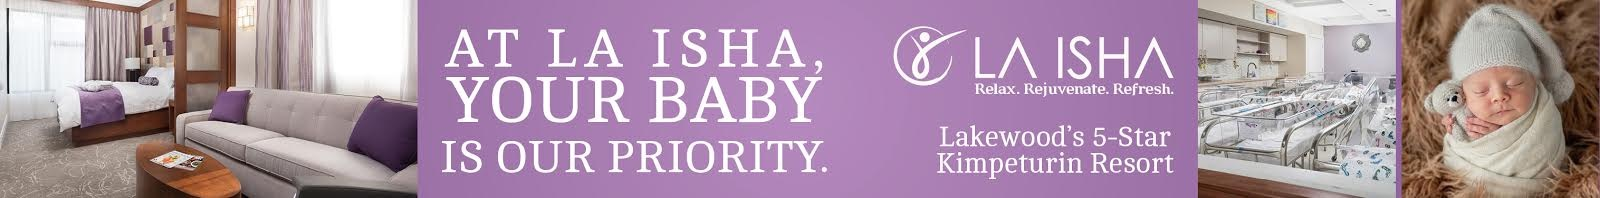 Having a Baby? This is Why You Deserve a La Isha Vacation